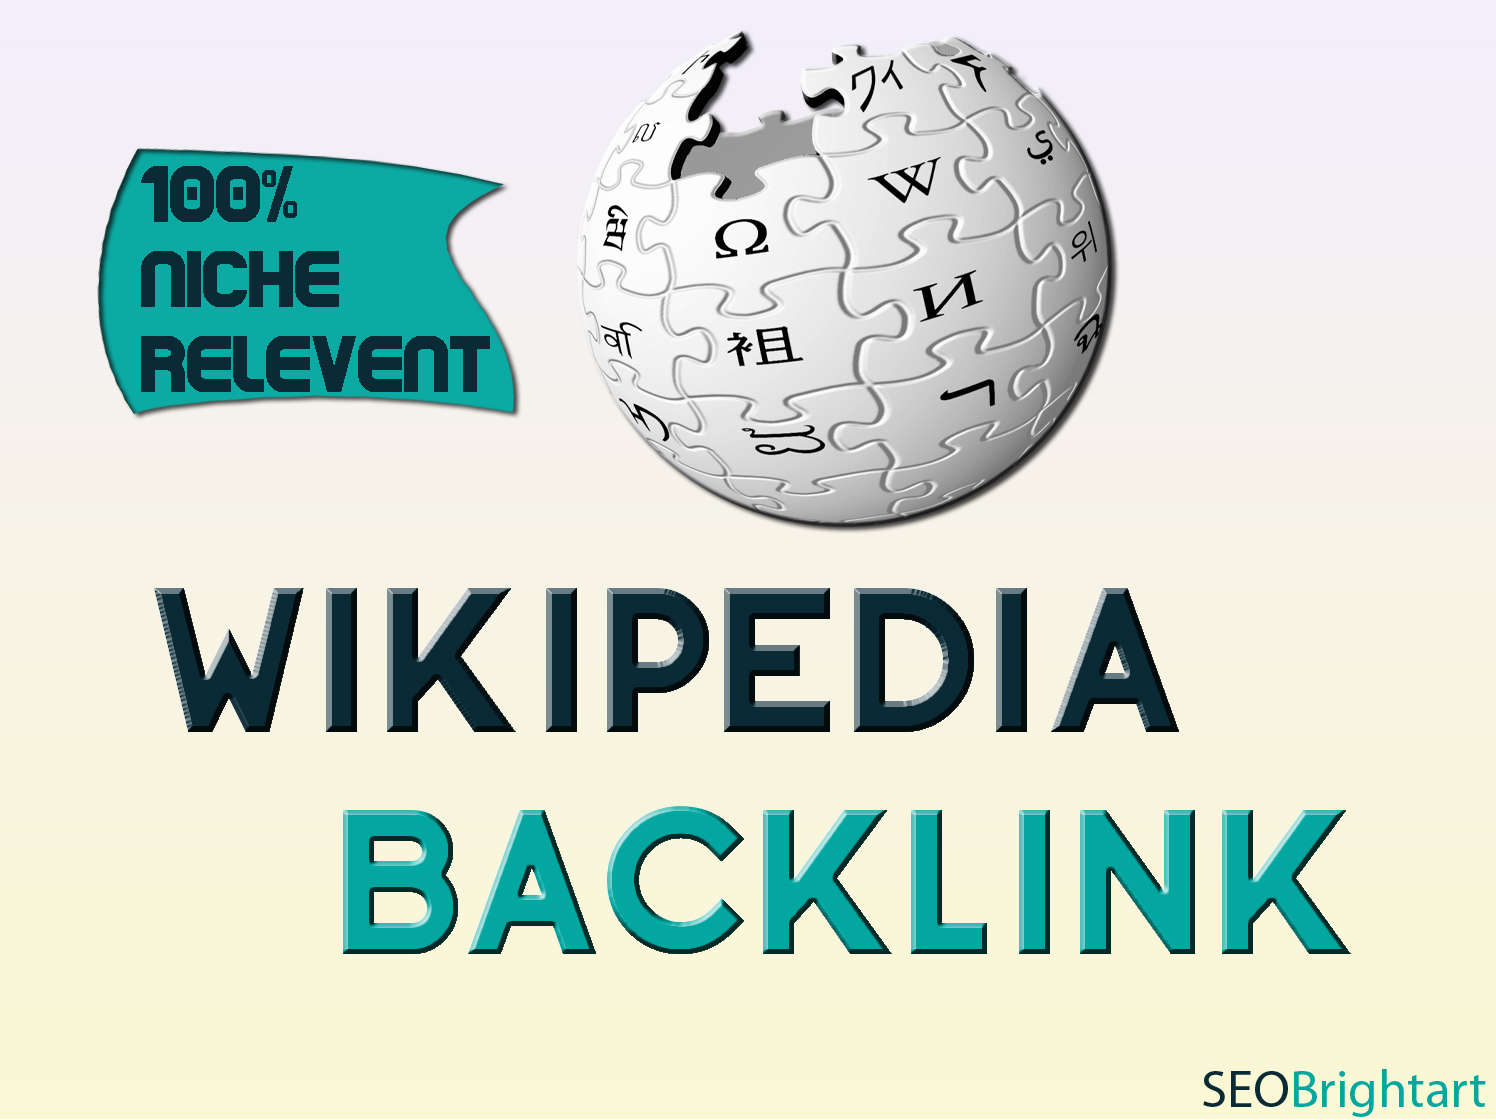 Overruling Wikipedia backlink 100 percent Niche relevant